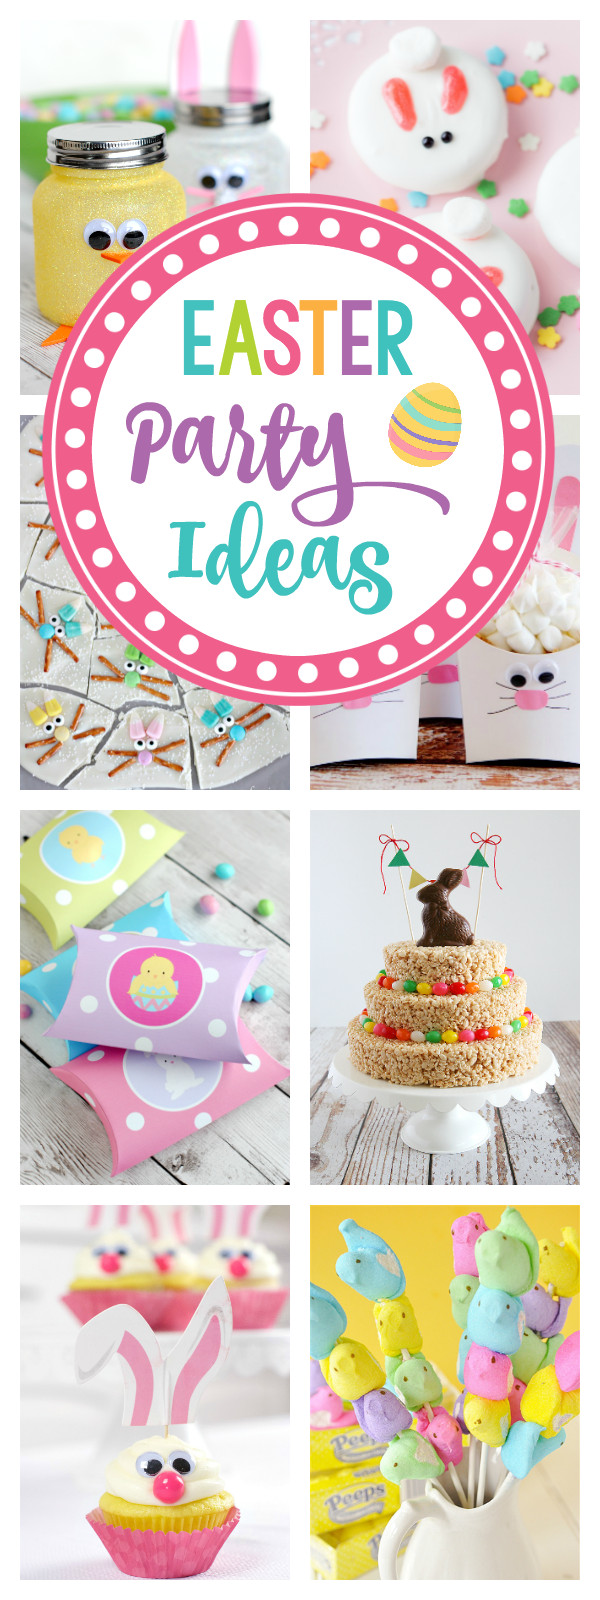 Easter Party Games For Kids  25 Fun Easter Party Ideas for Kids – Fun Squared